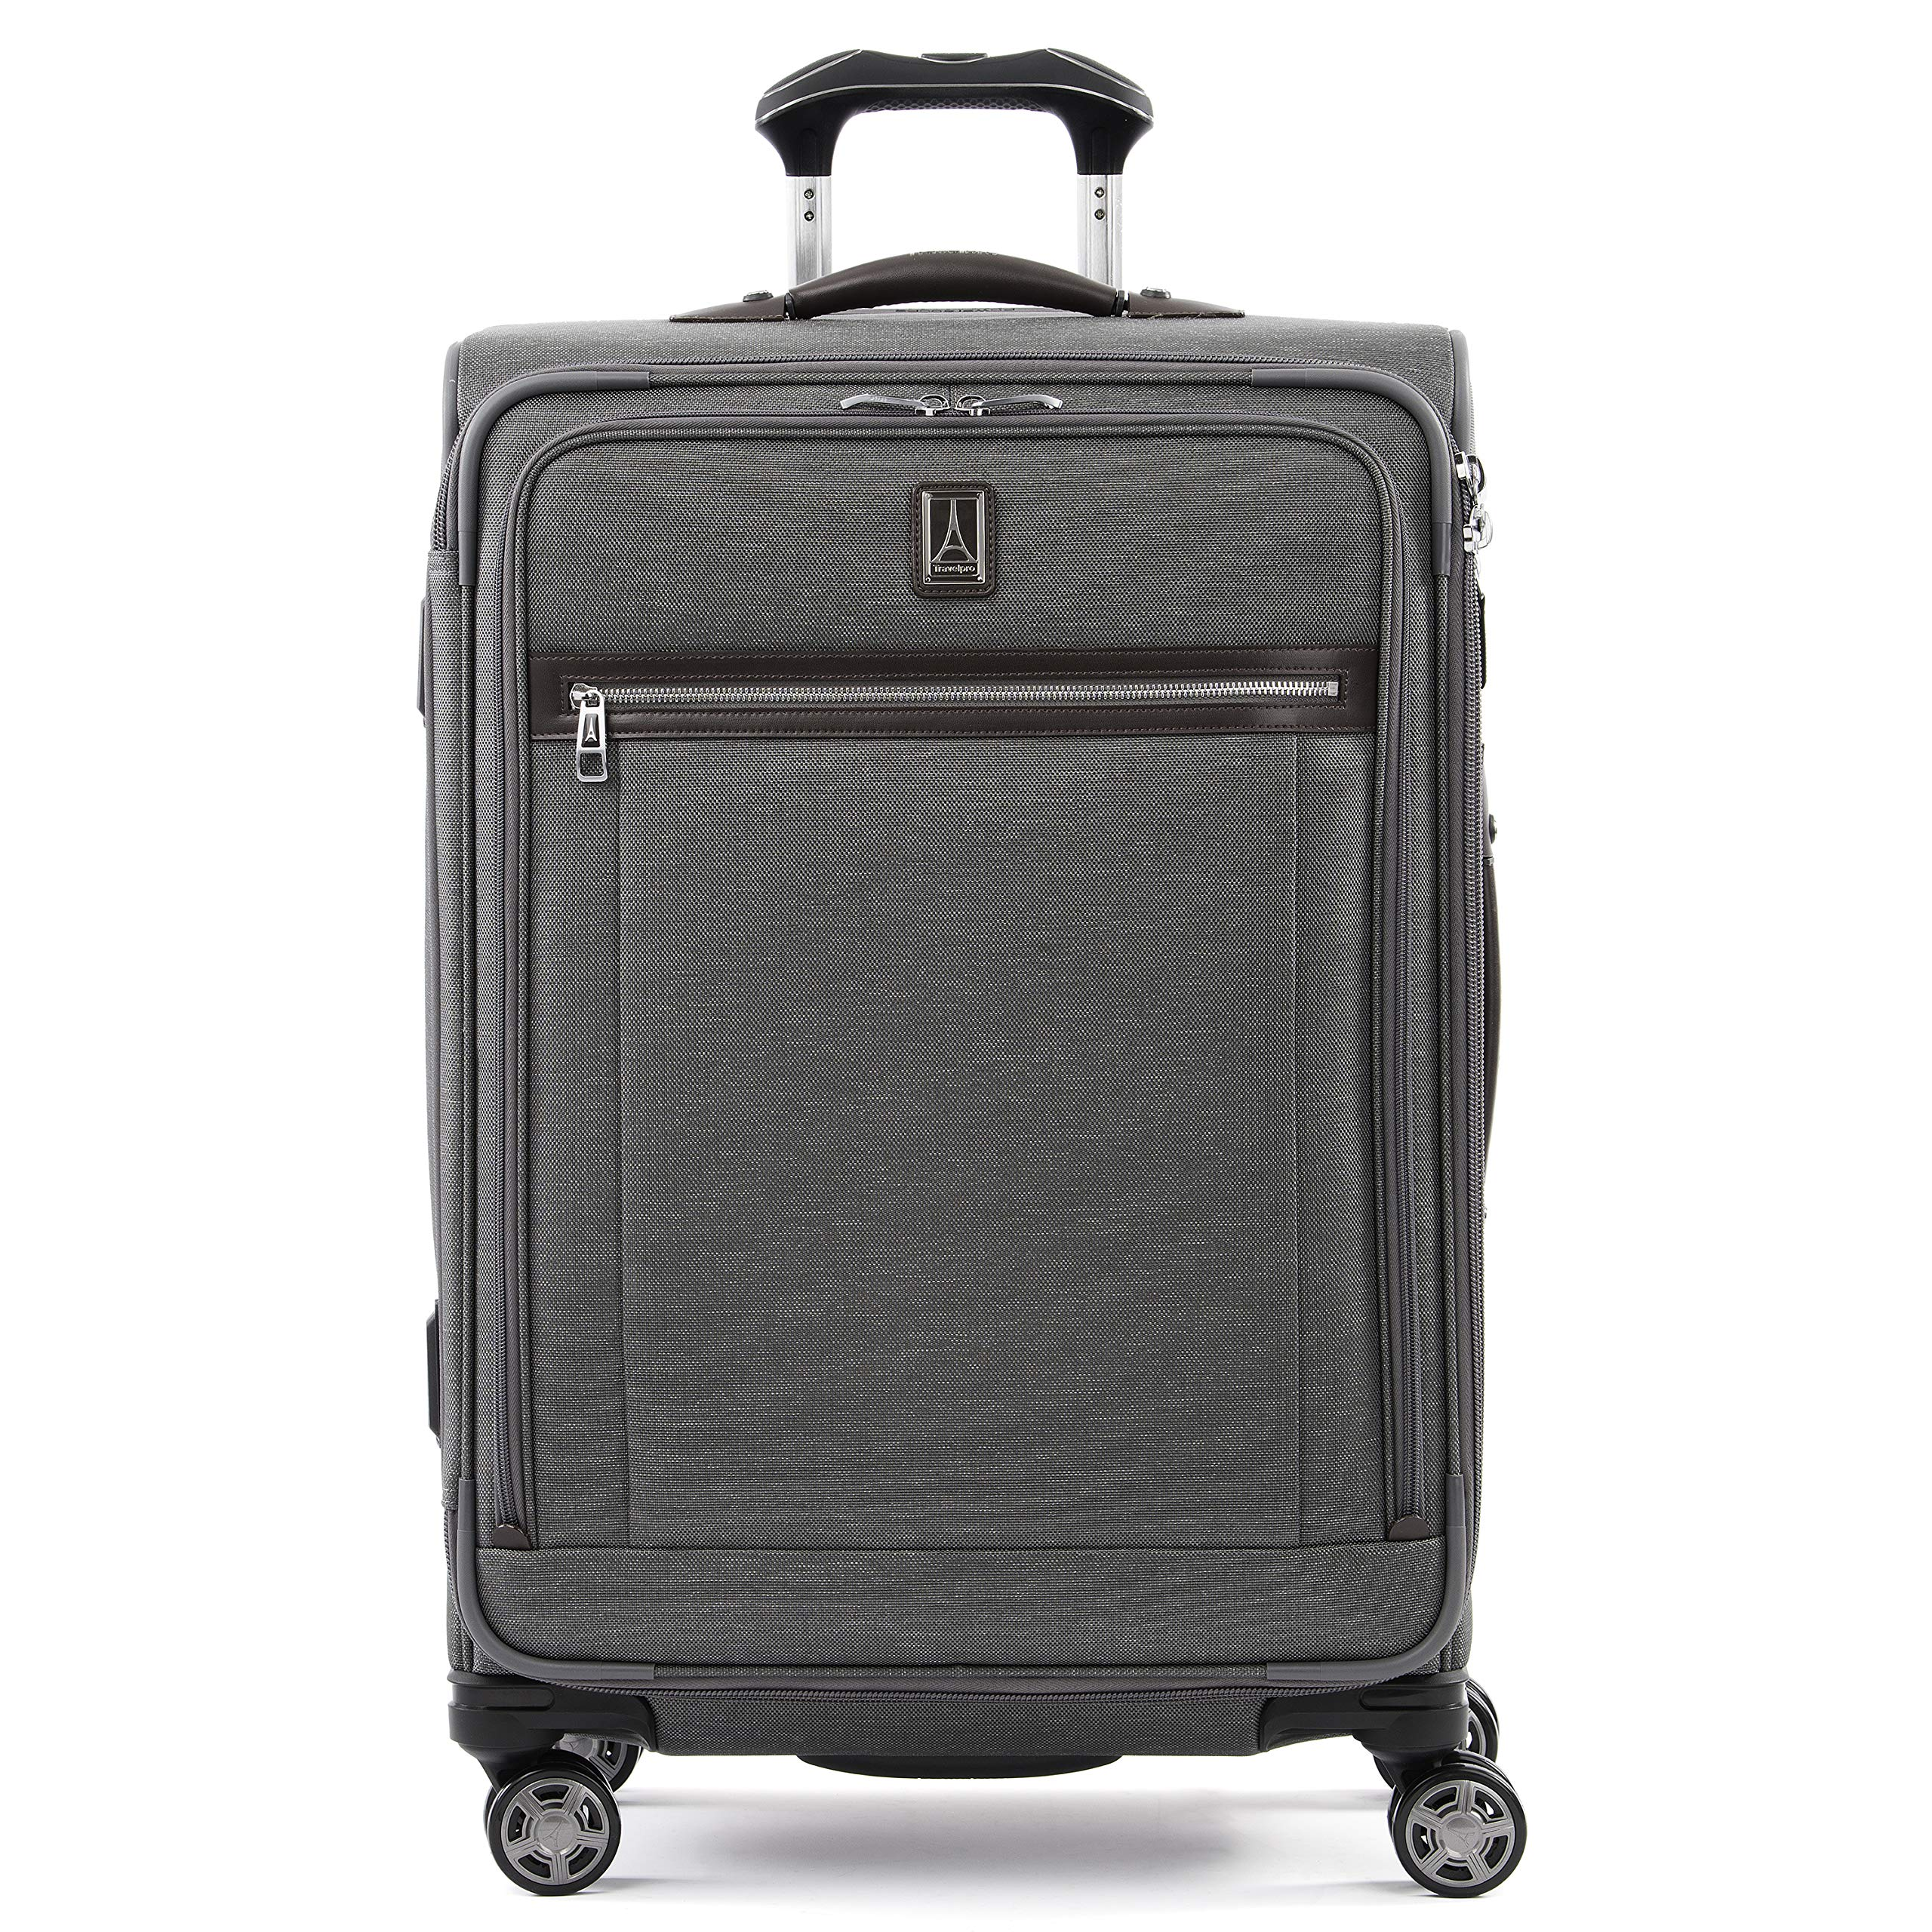 Travelpro Luggage Checked Medium, Vintage Grey by Travelpro